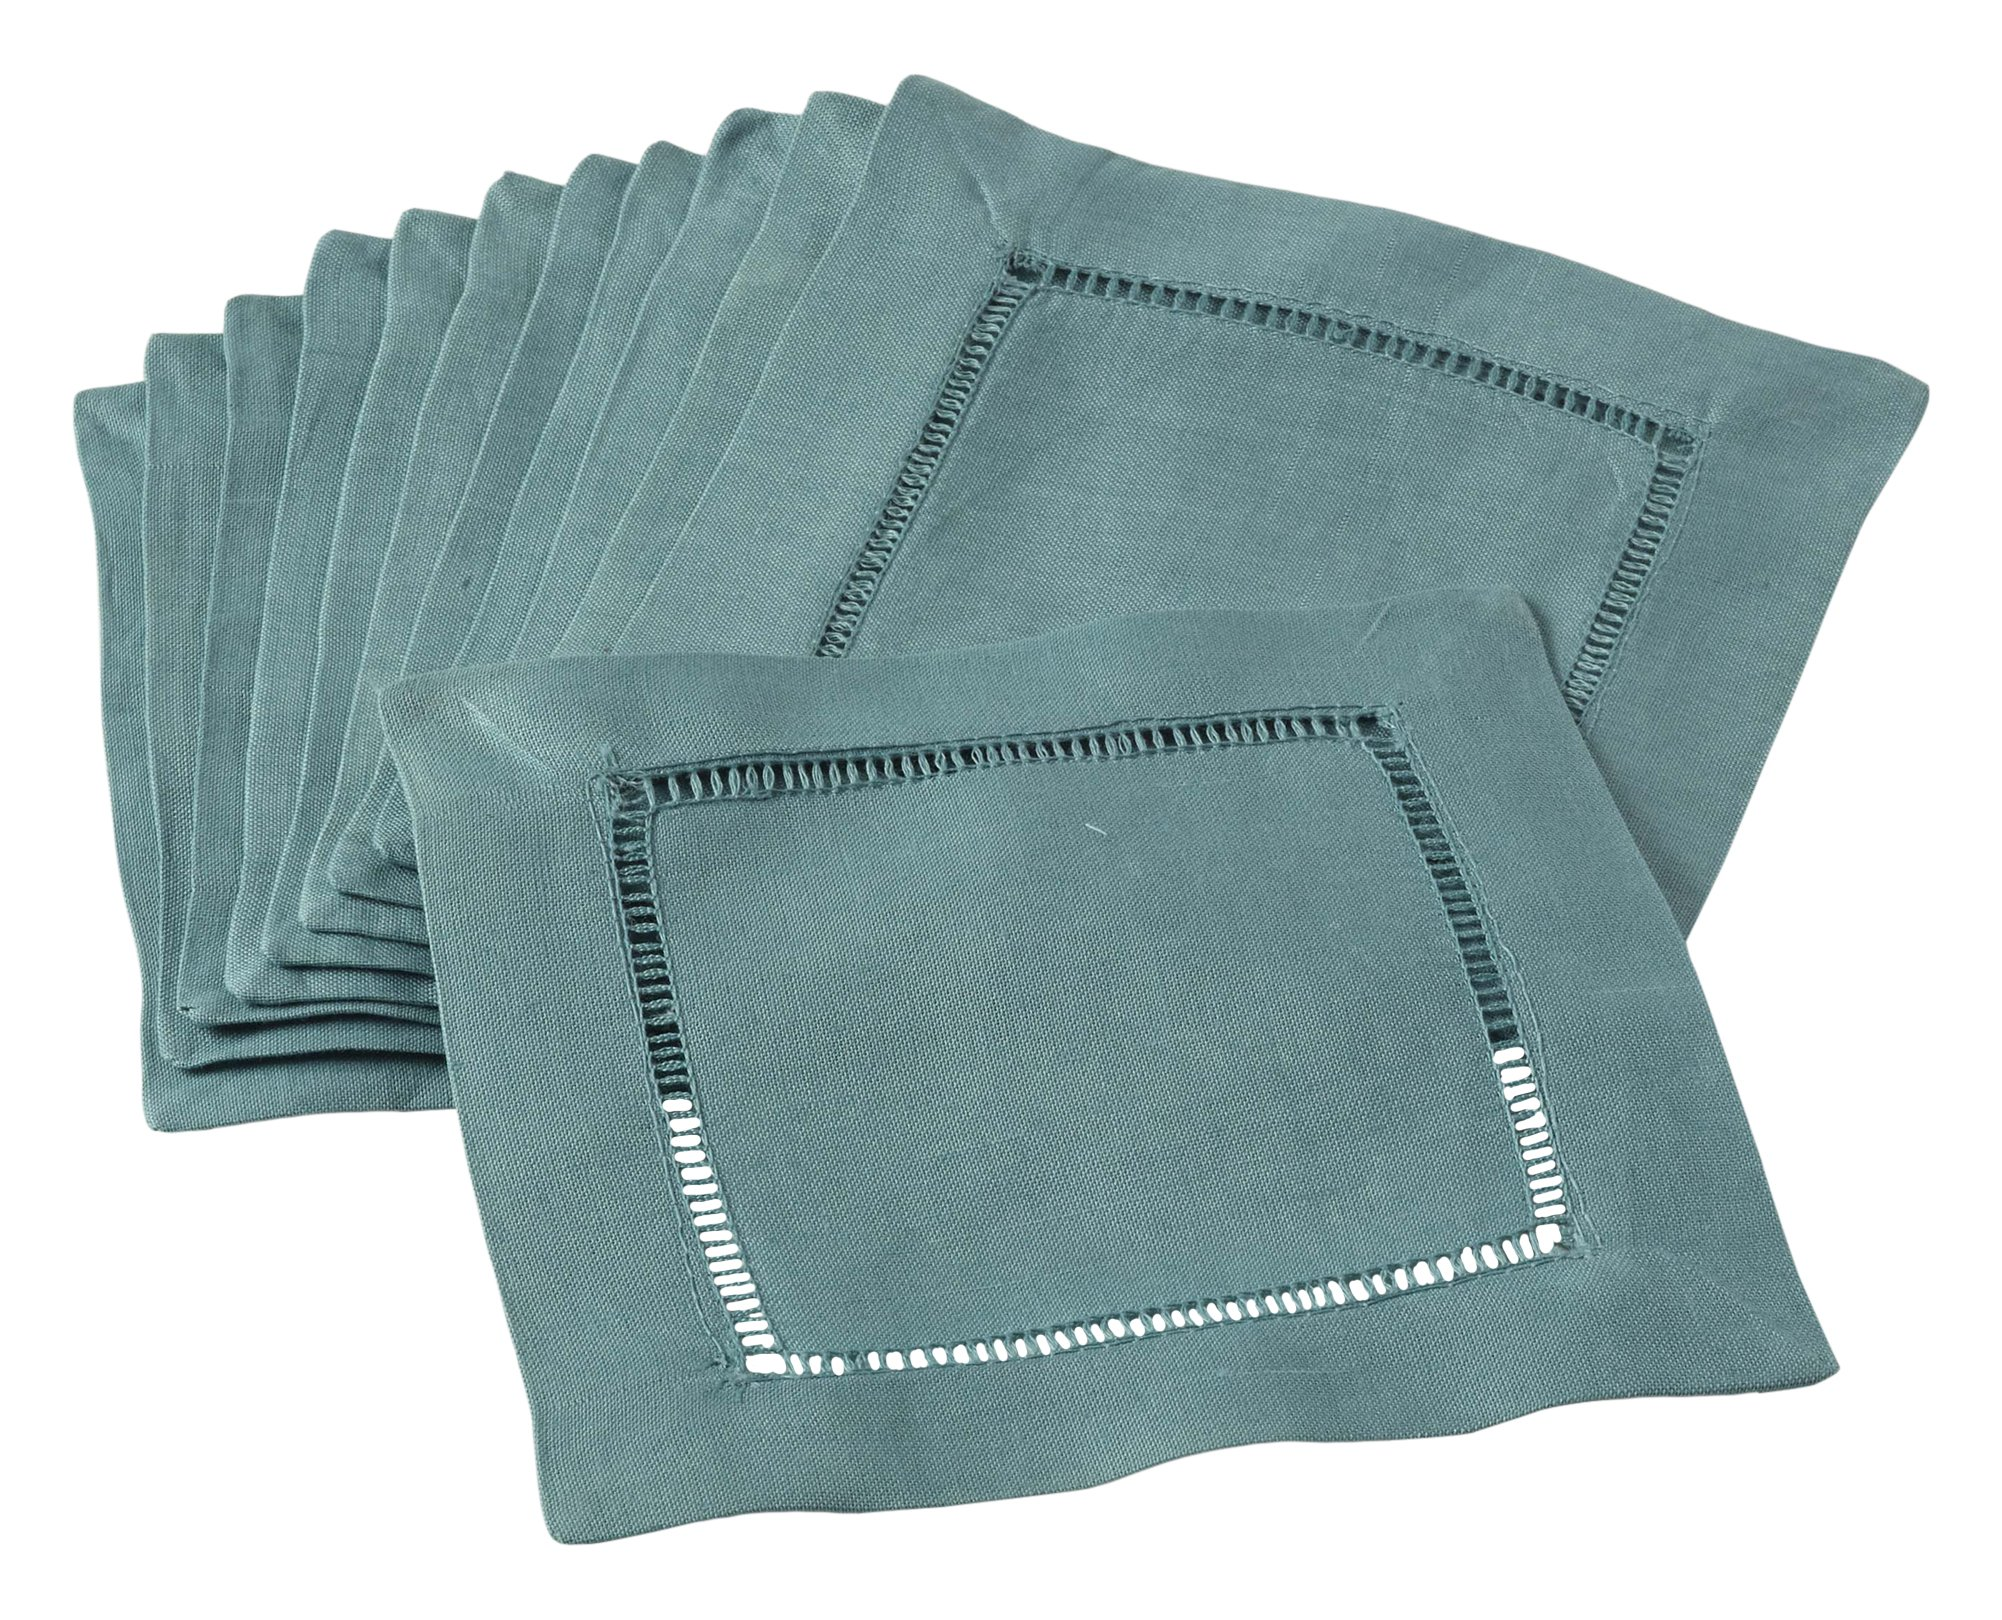 SARO LIFESTYLE 6100C.SE6S 24/7 Everyday Collection Hemstitched Cocktail Napkin (Set of 12), 6'' Square, Sea Green